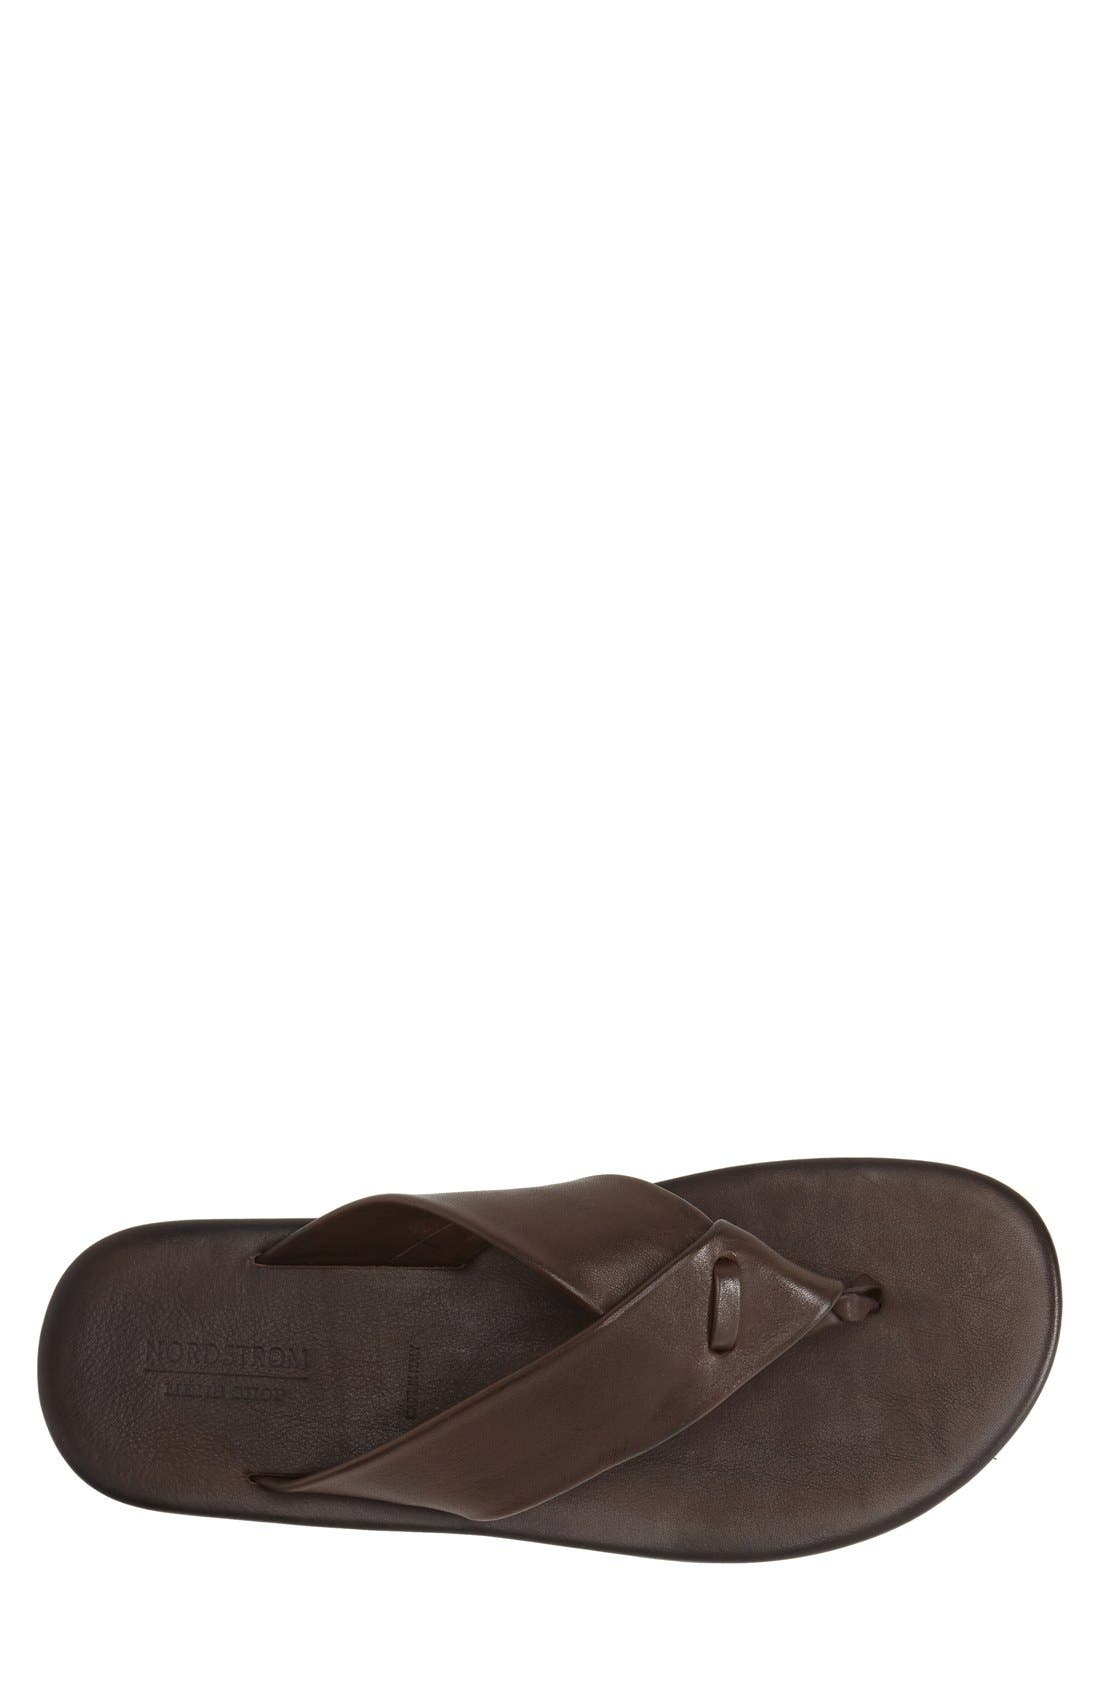 'Breeze' Flip Flop,                             Alternate thumbnail 3, color,                             Brown